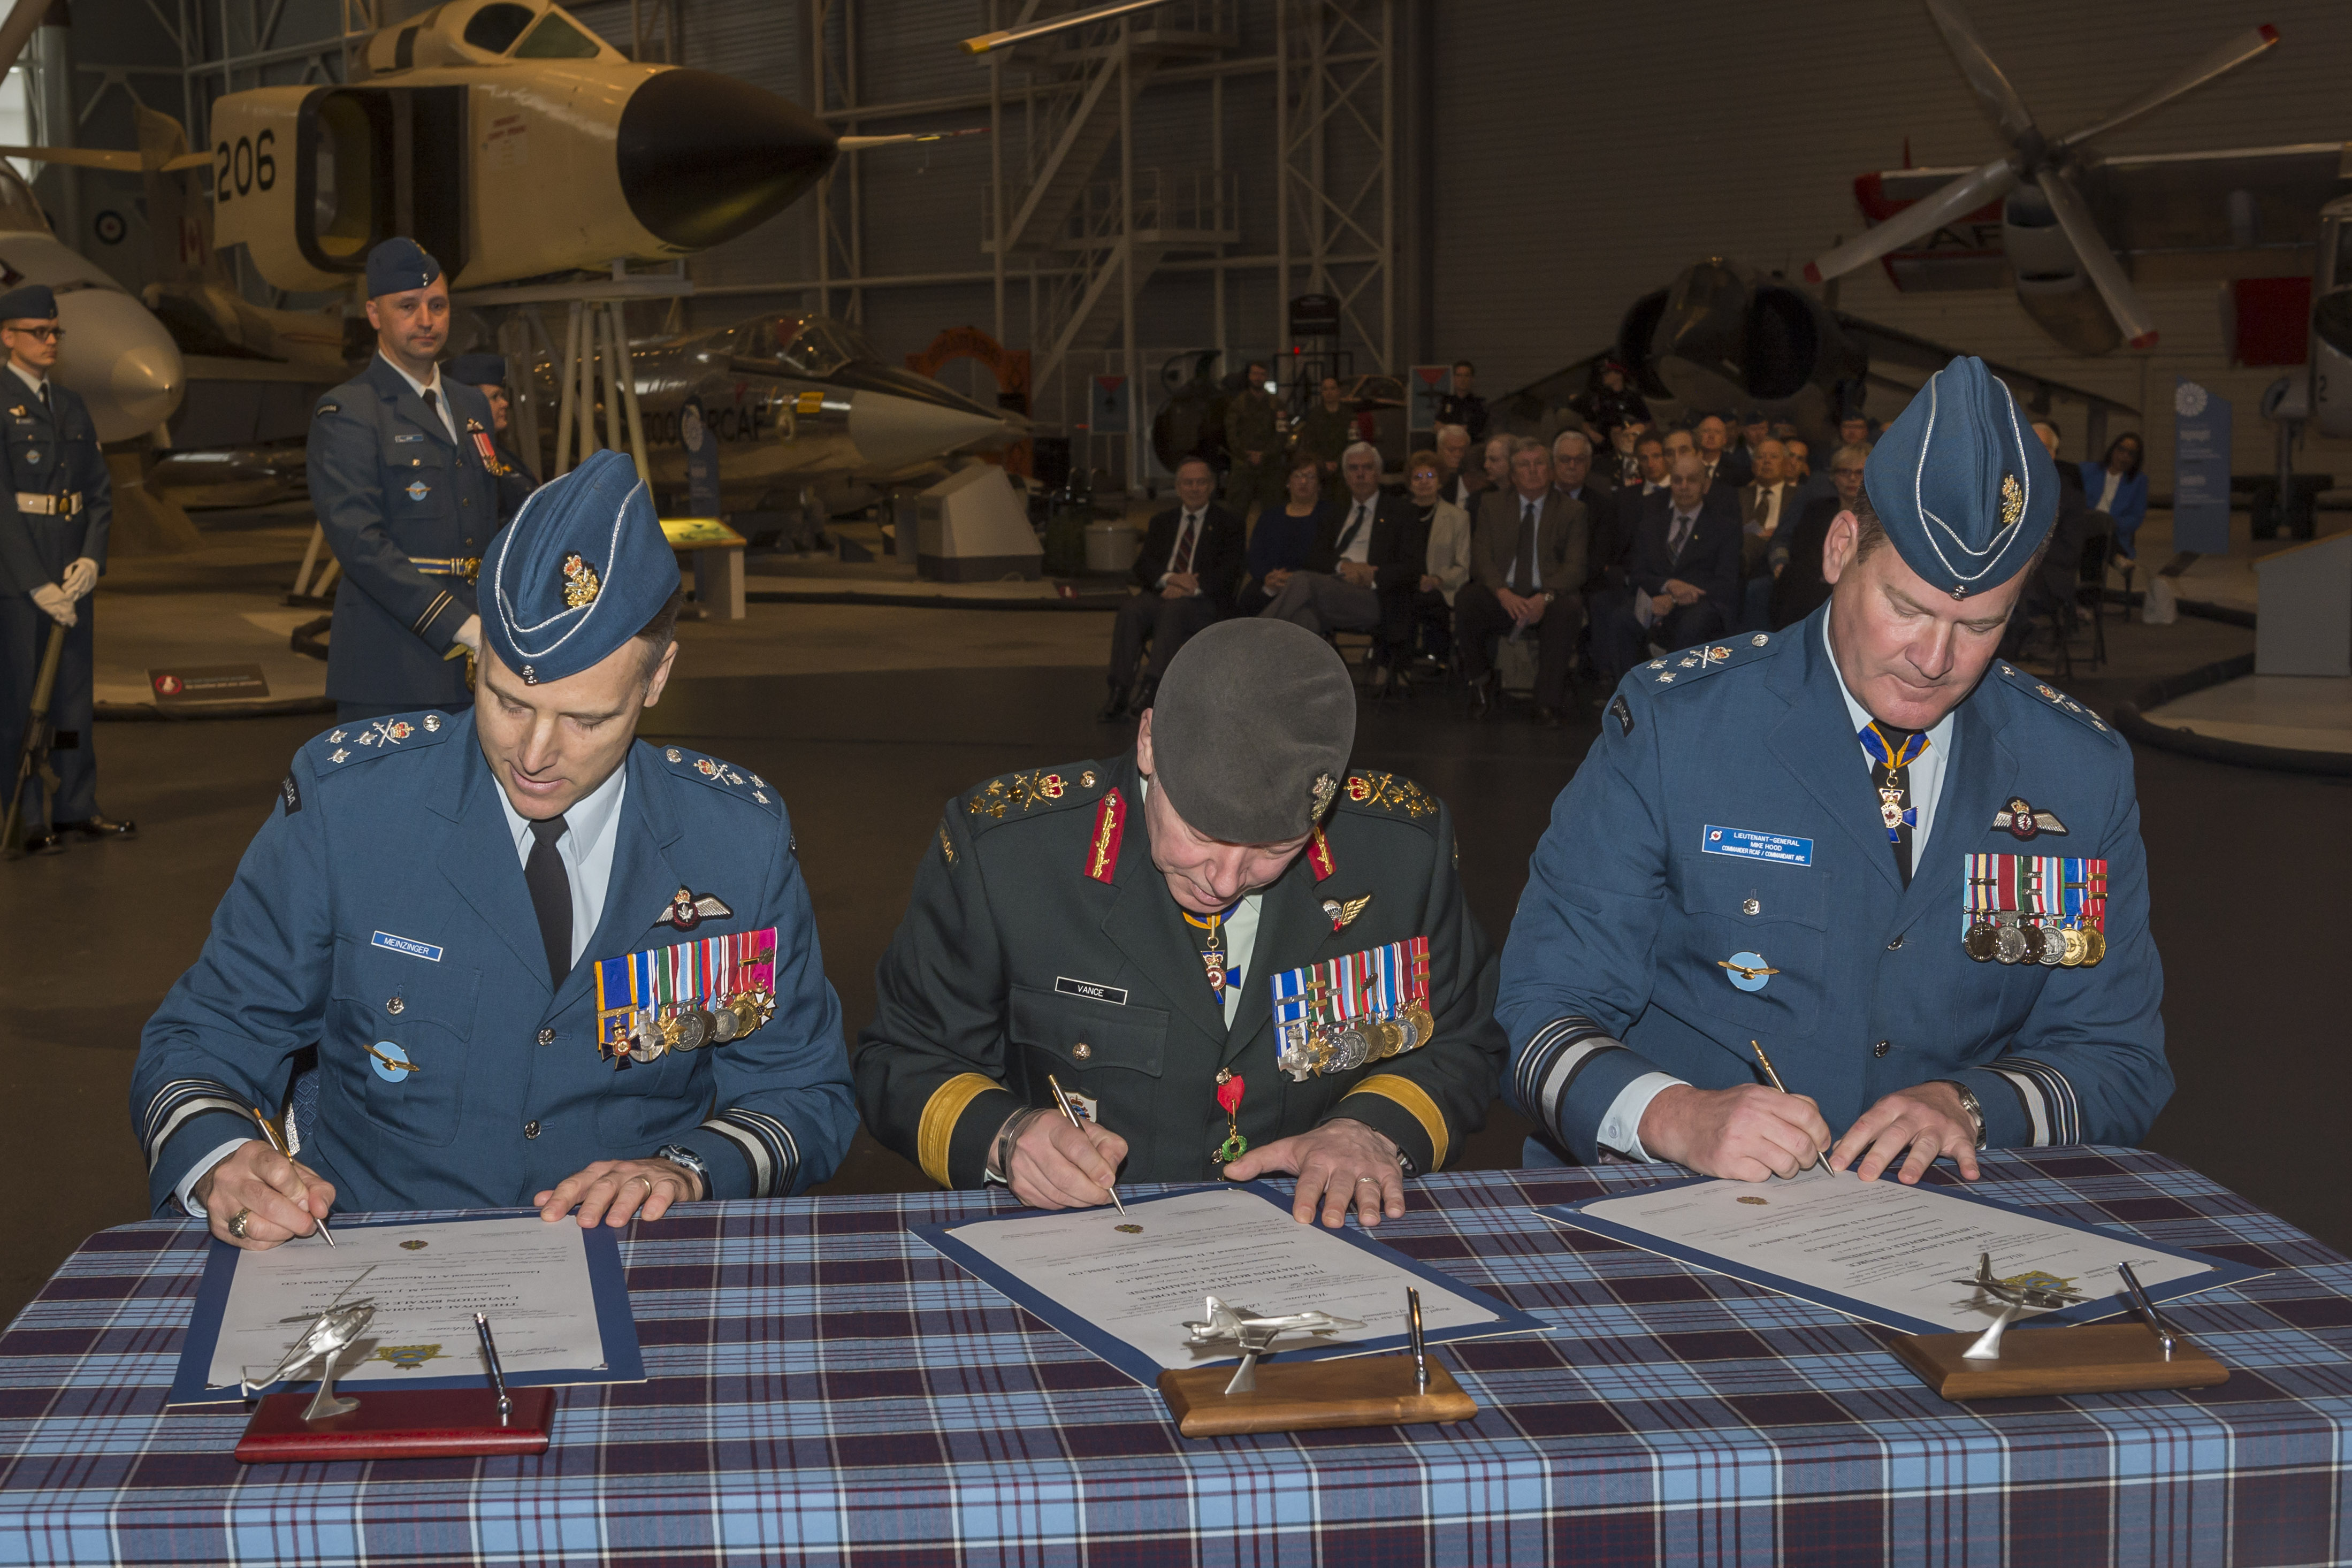 Making it official. From left, the incoming commander of the RCAF, Lieutenant-General Al Meinzinger; the chief of the defence staff, General Jonathan Vance; and the outgoing commander of the RCAF, Lieutenant-General Mike Hood, sign the change of command documents. PHOTO: Corporal Alana Morin, FA03-2018-0040-041